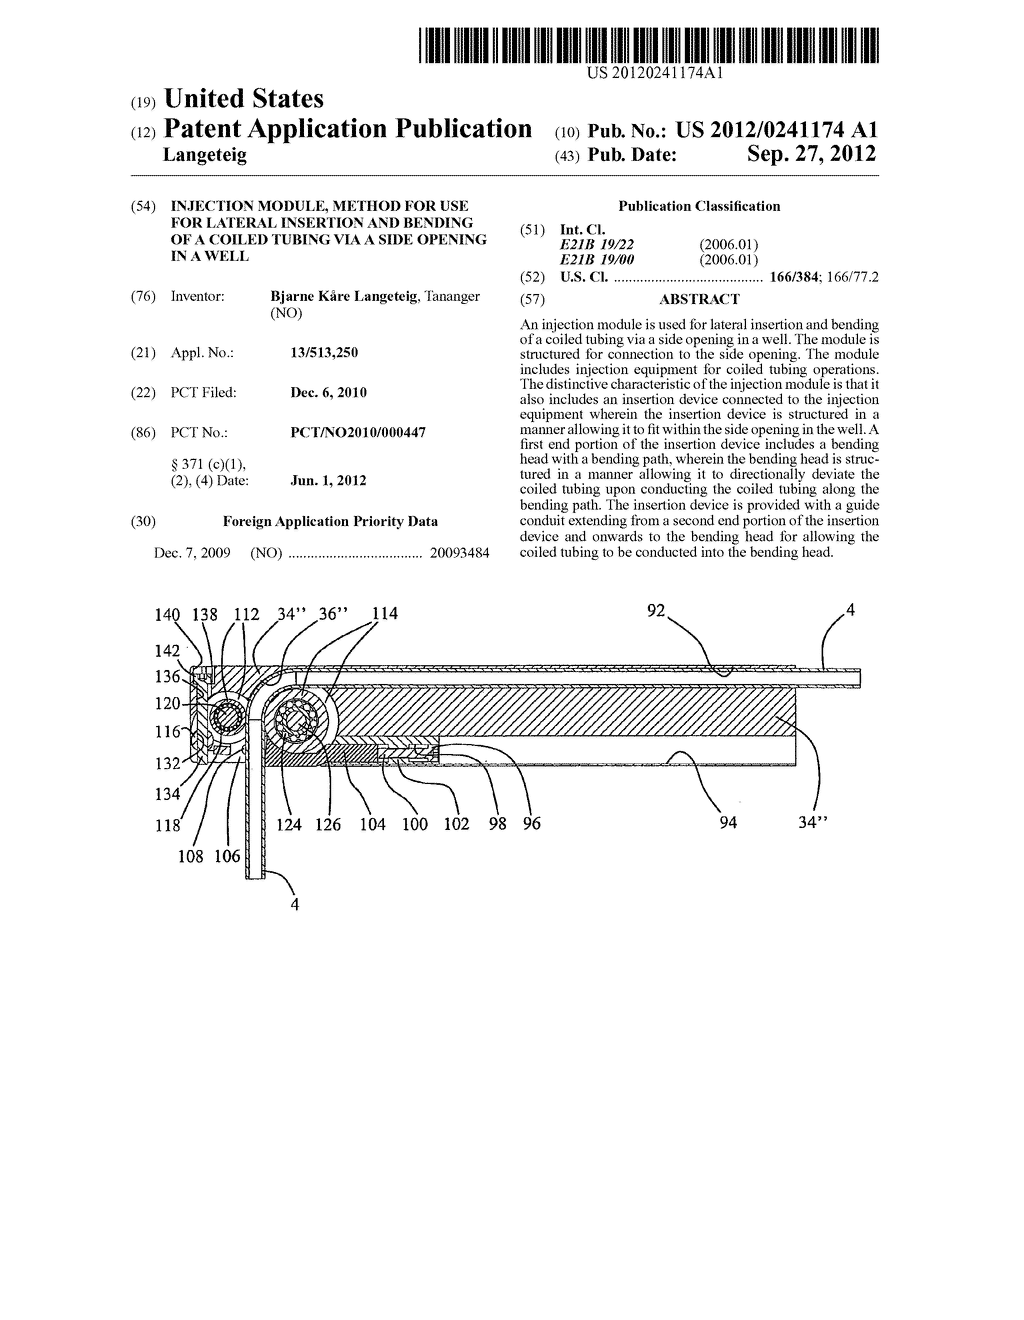 INJECTION MODULE, METHOD FOR USE FOR LATERAL INSERTION AND BENDING OF A     COILED TUBING VIA A SIDE OPENING IN A WELL - diagram, schematic, and image 01